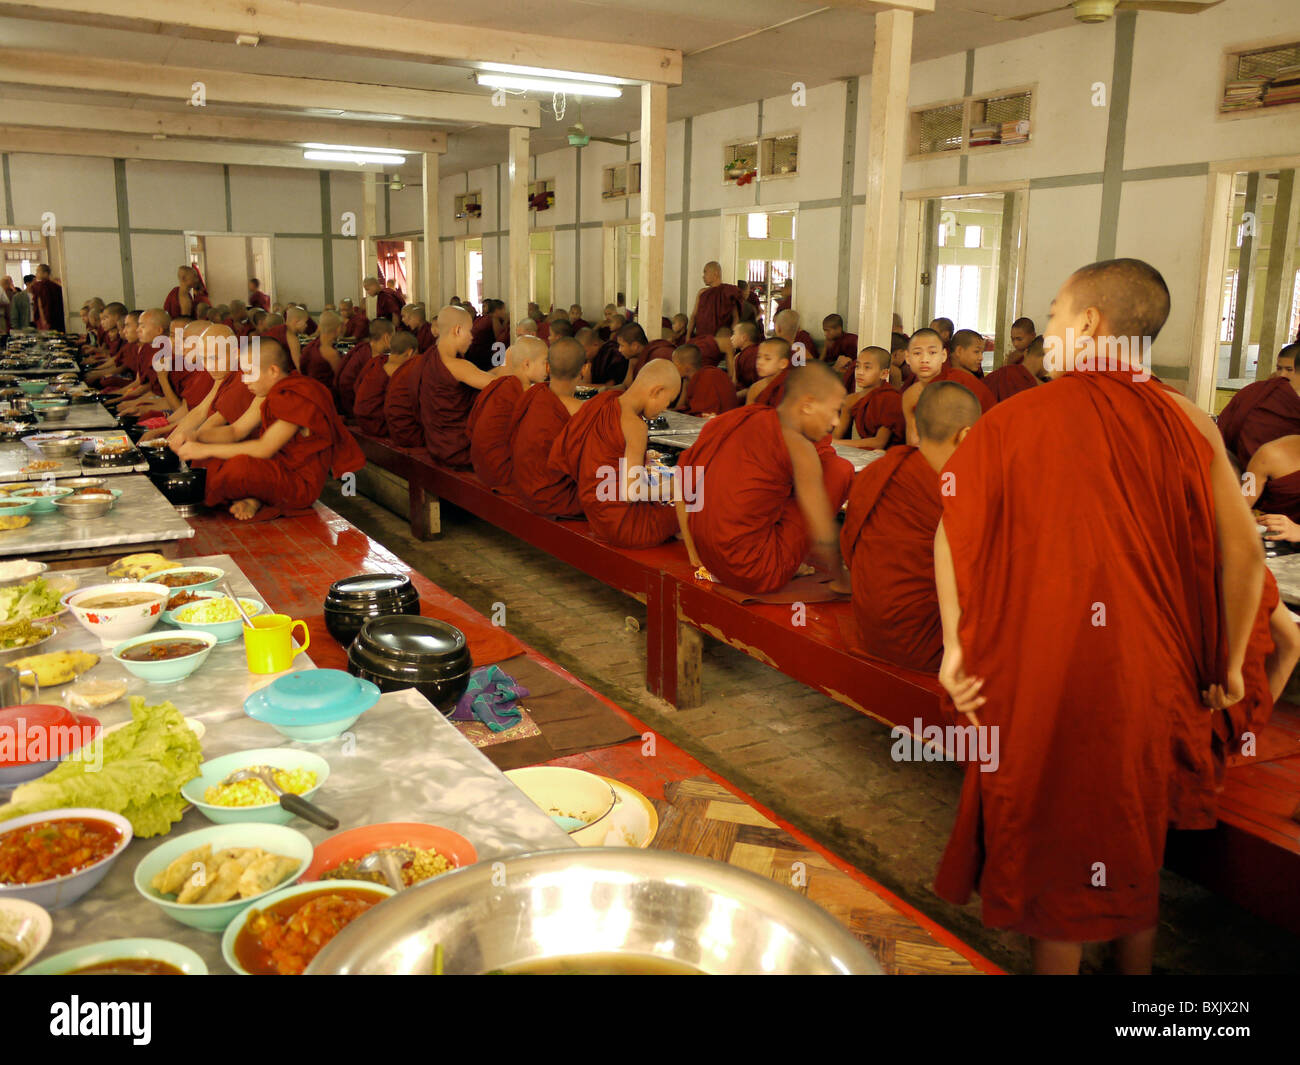 Monks sitting down for lunch at Amarapura Monastry, near Mandalay - Stock Image